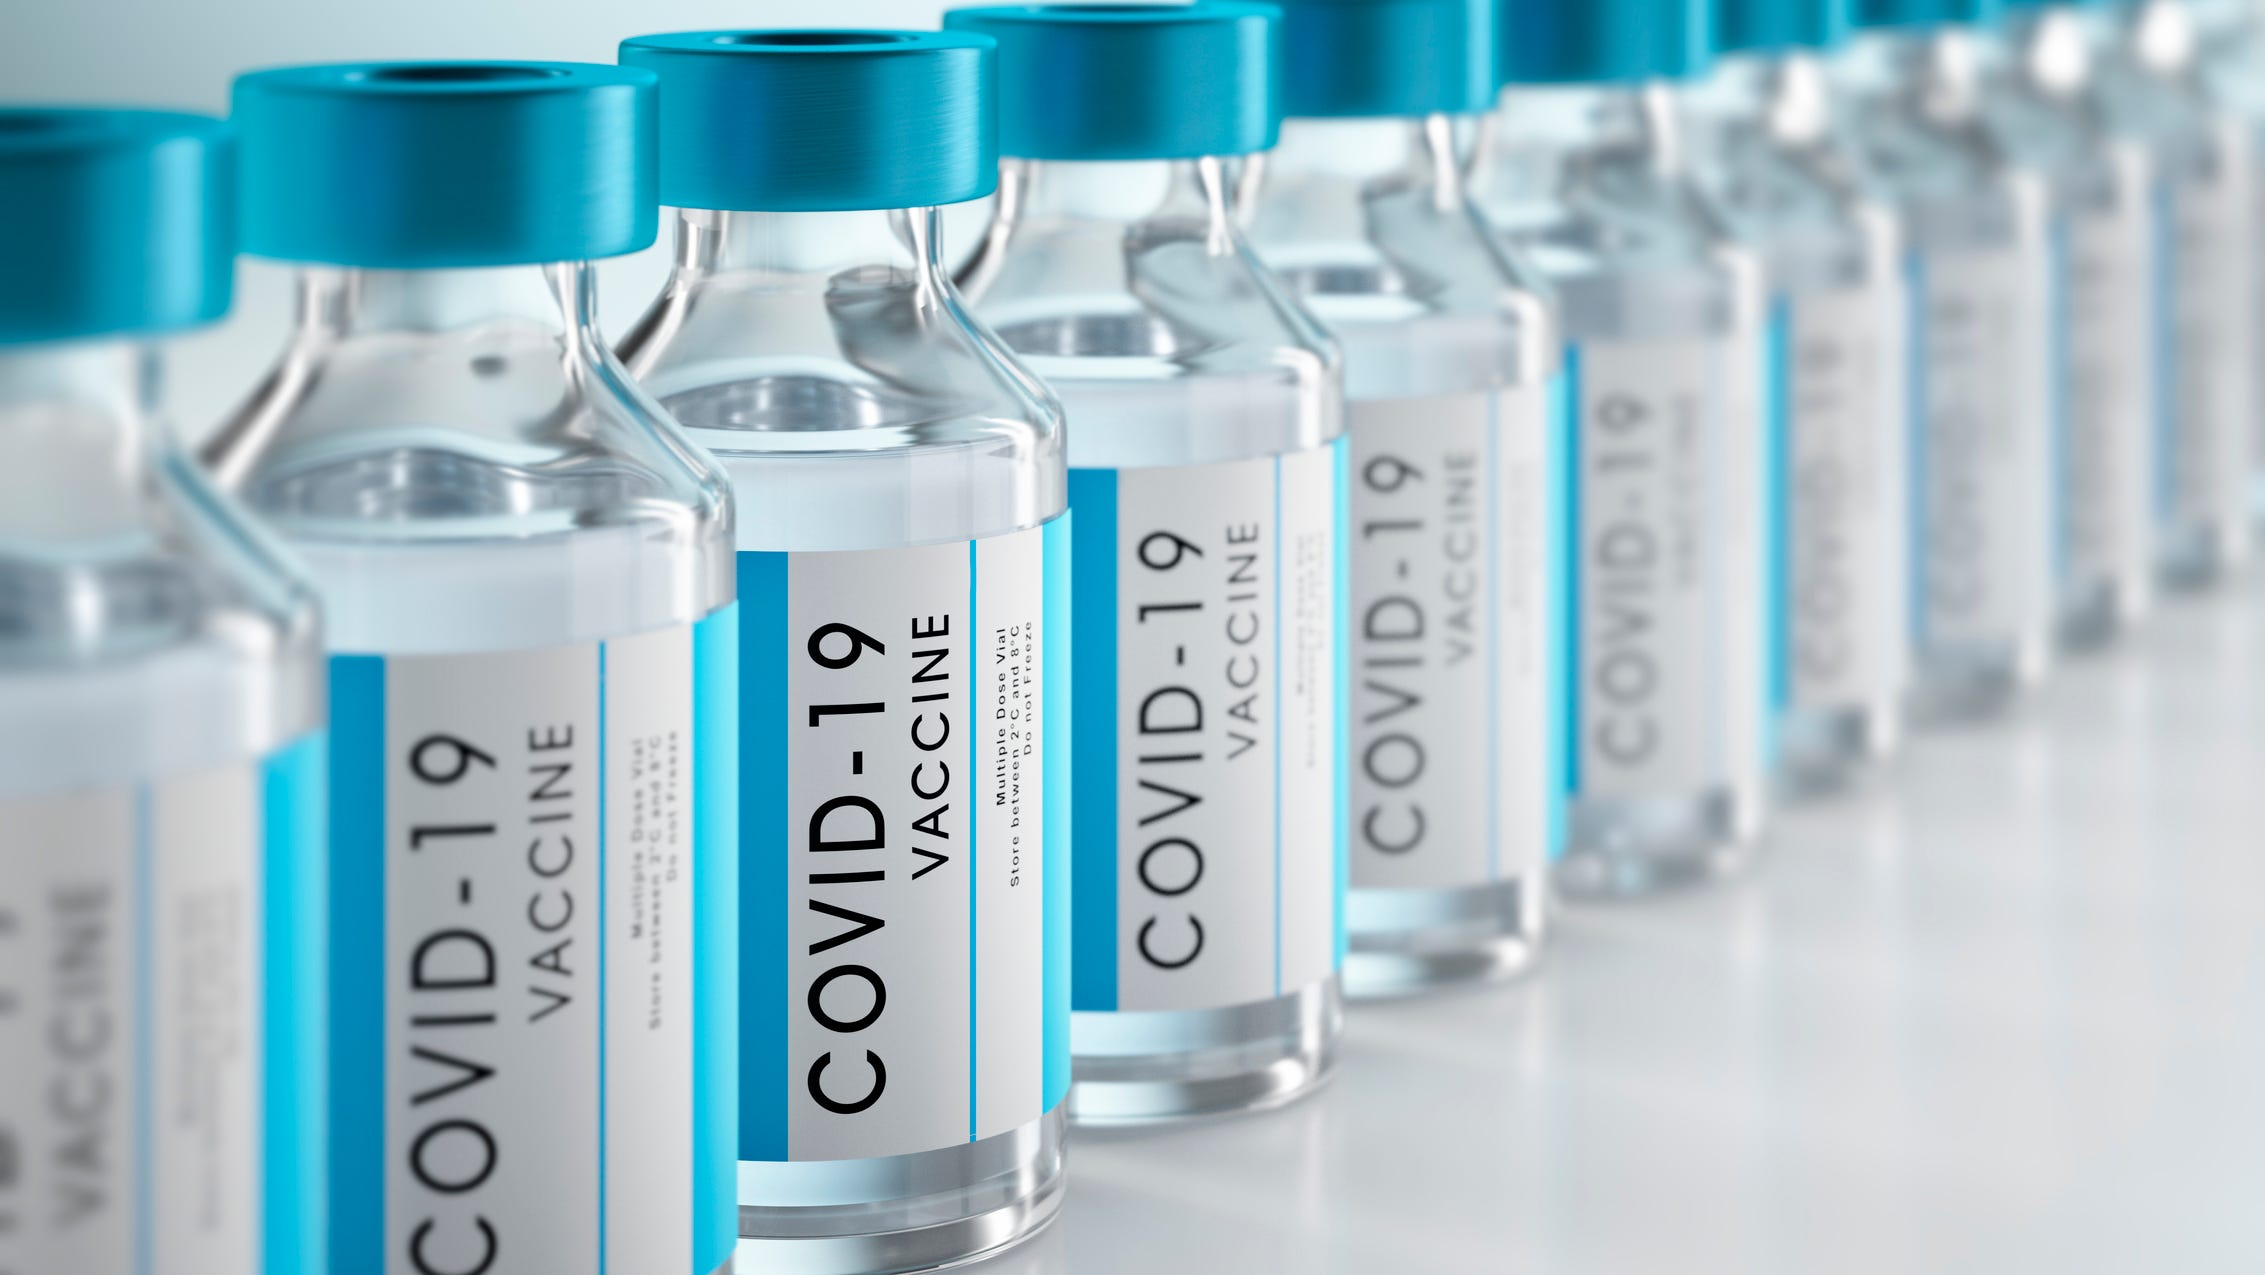 COVID-19 vaccinedid not cause the death of UC student